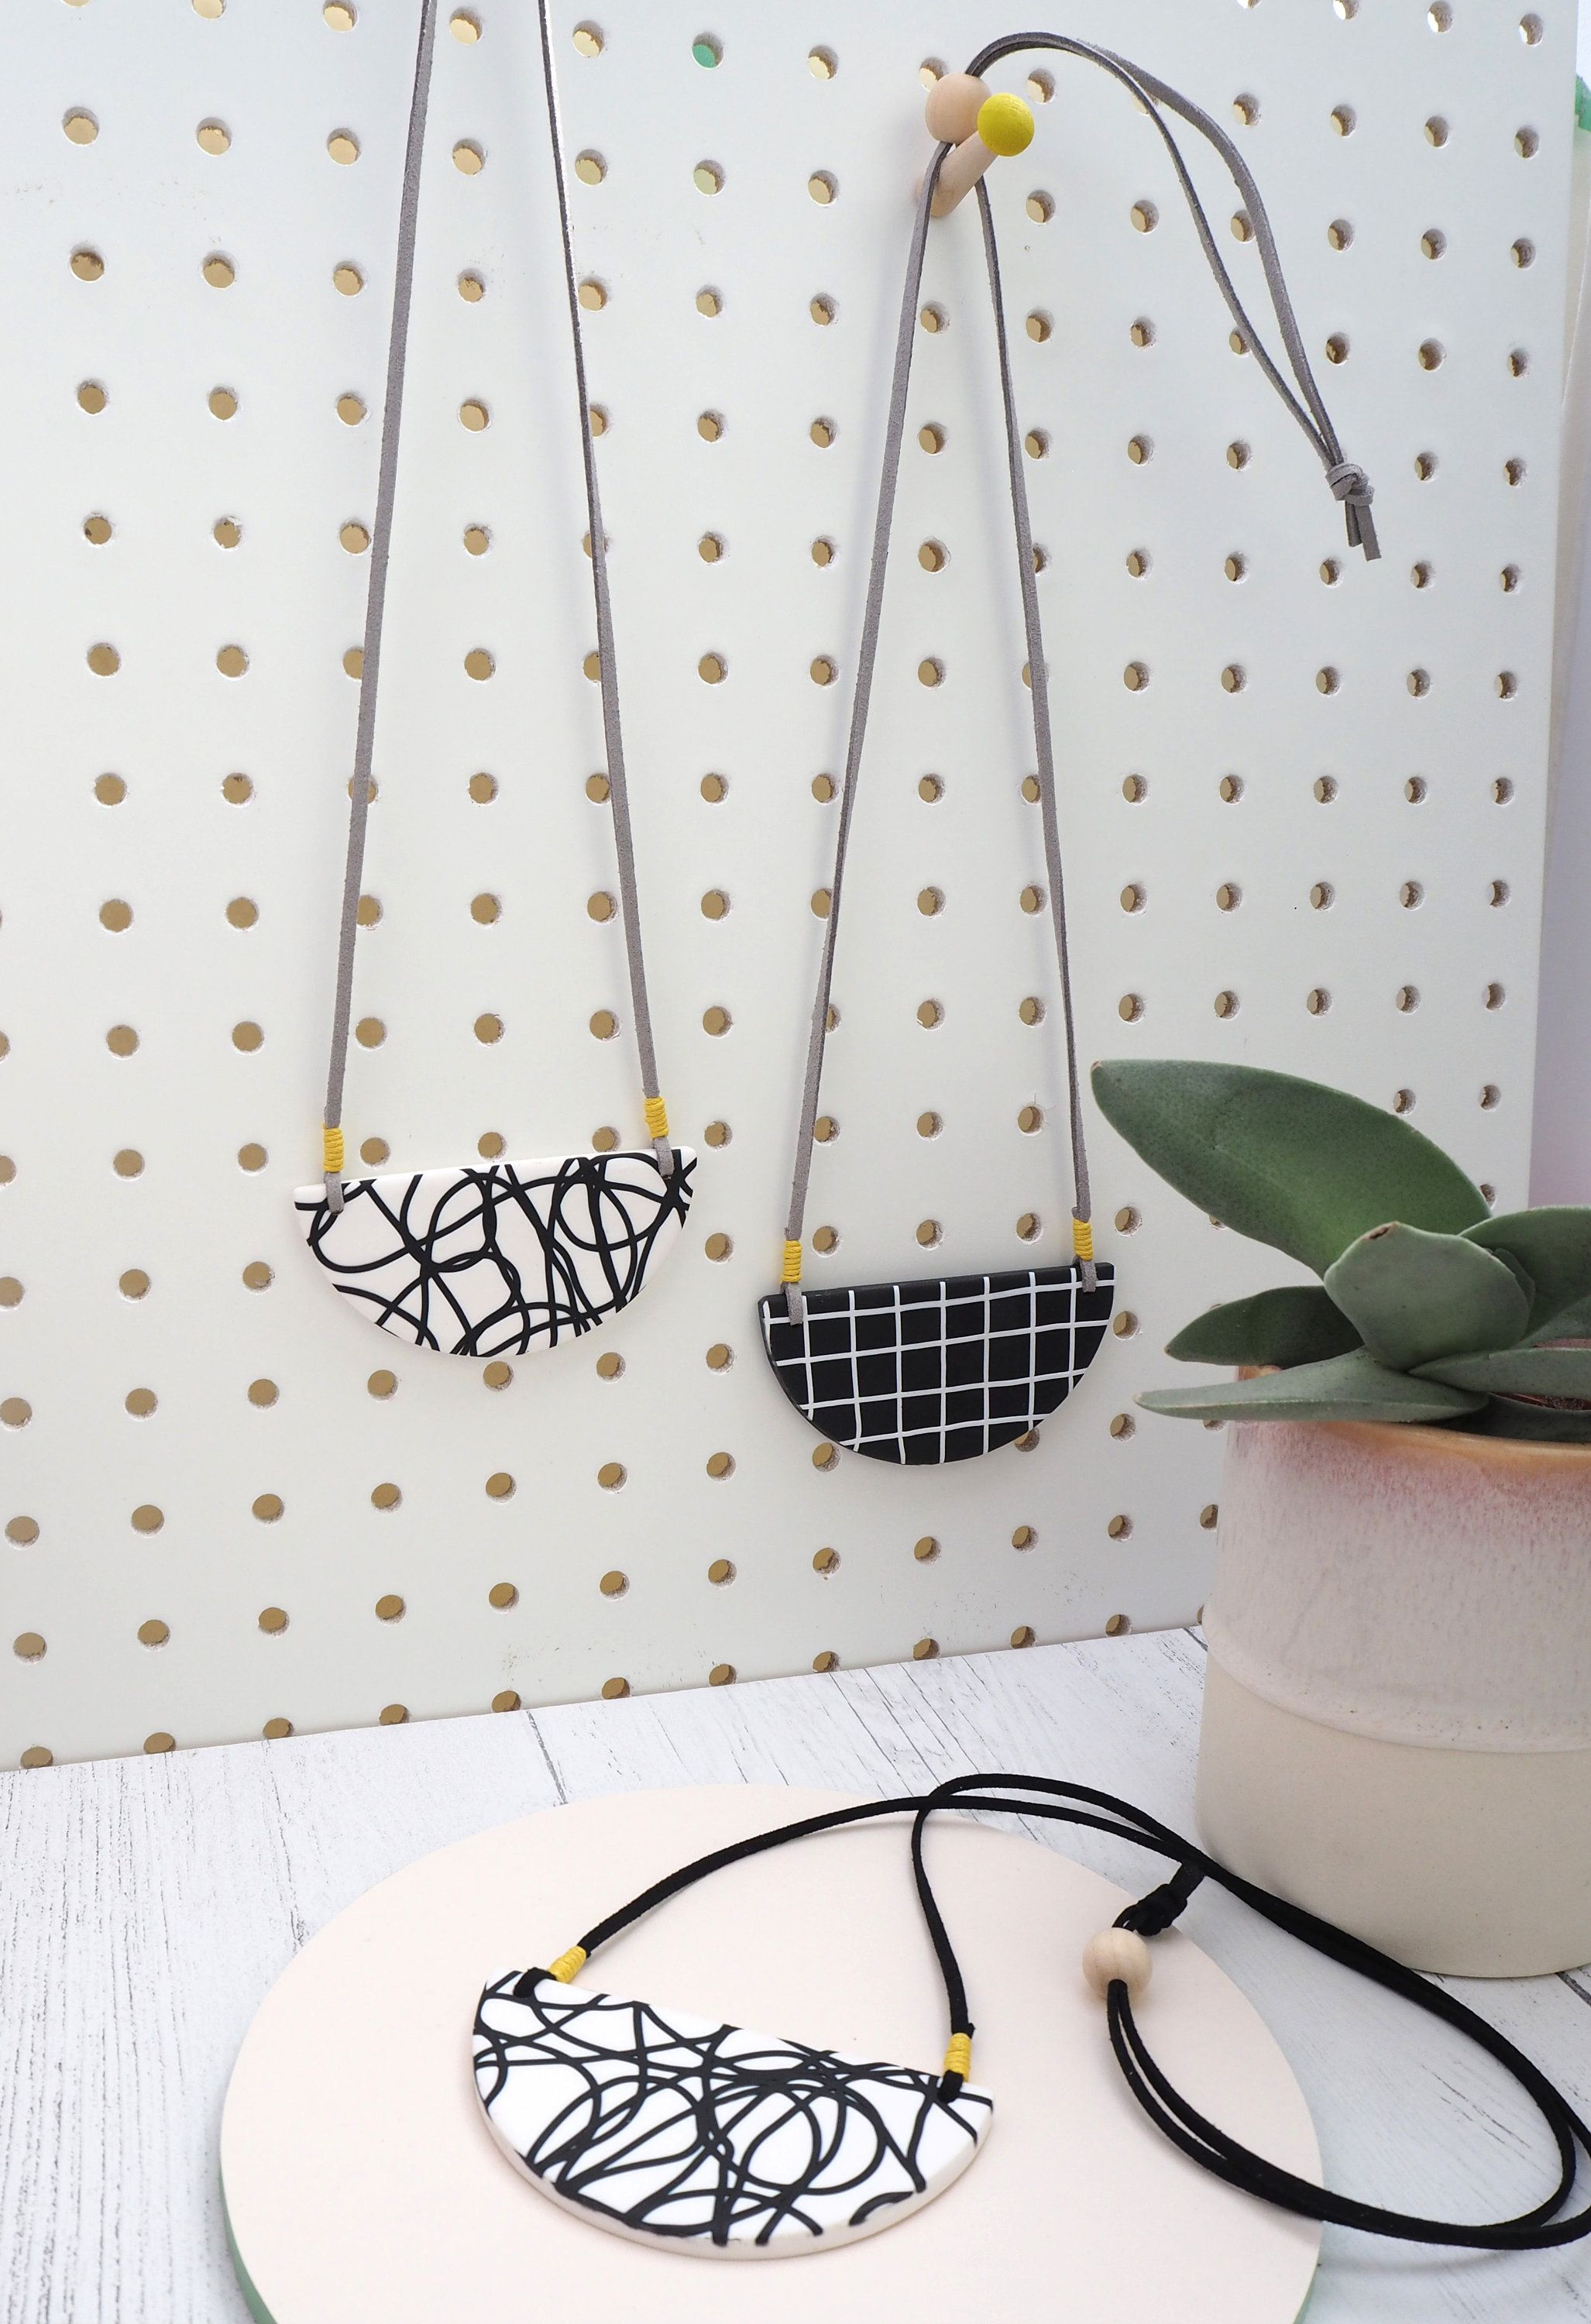 MADE TO ORDER White grid bib necklace made to order large semi circle monochrome statement necklace white and black grid design,